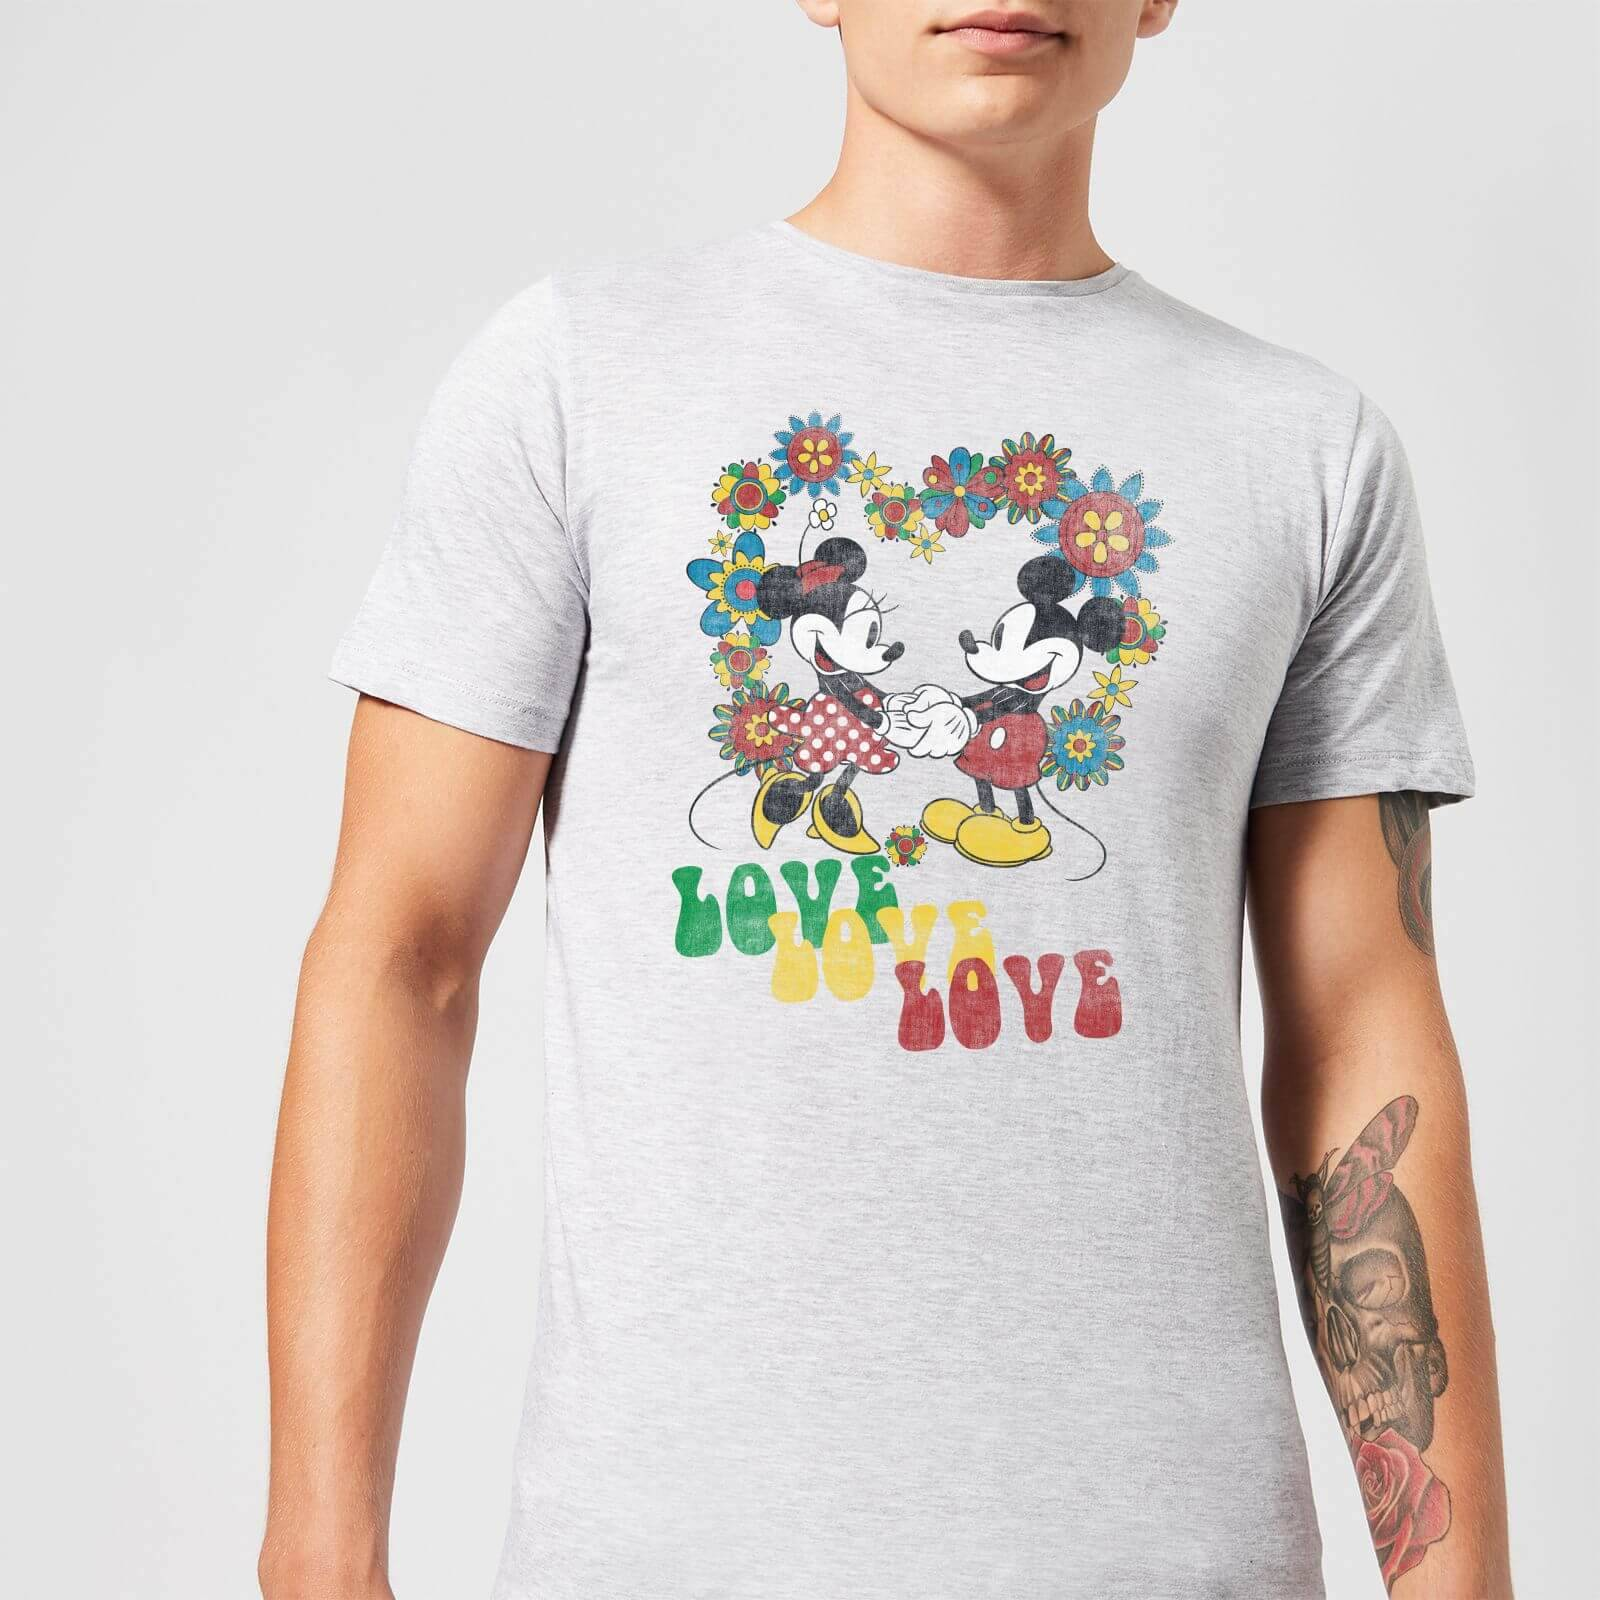 Disney Mickey Mouse Hippie Love T-Shirt - Grey - 5XL - Grey